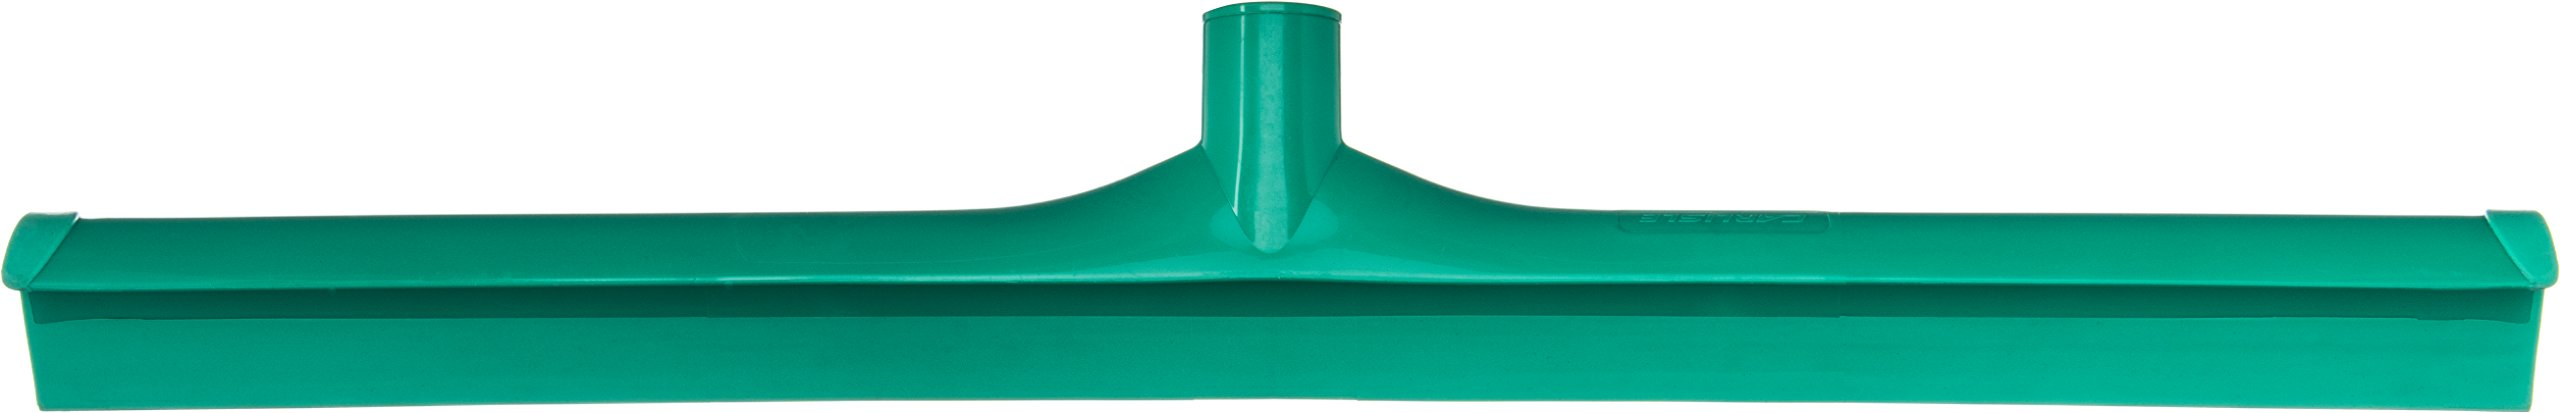 Carlisle 3656809 Solid One-Piece Foam Rubber Head Floor Squeegee, 24'' Length, Green by Carlisle (Image #3)